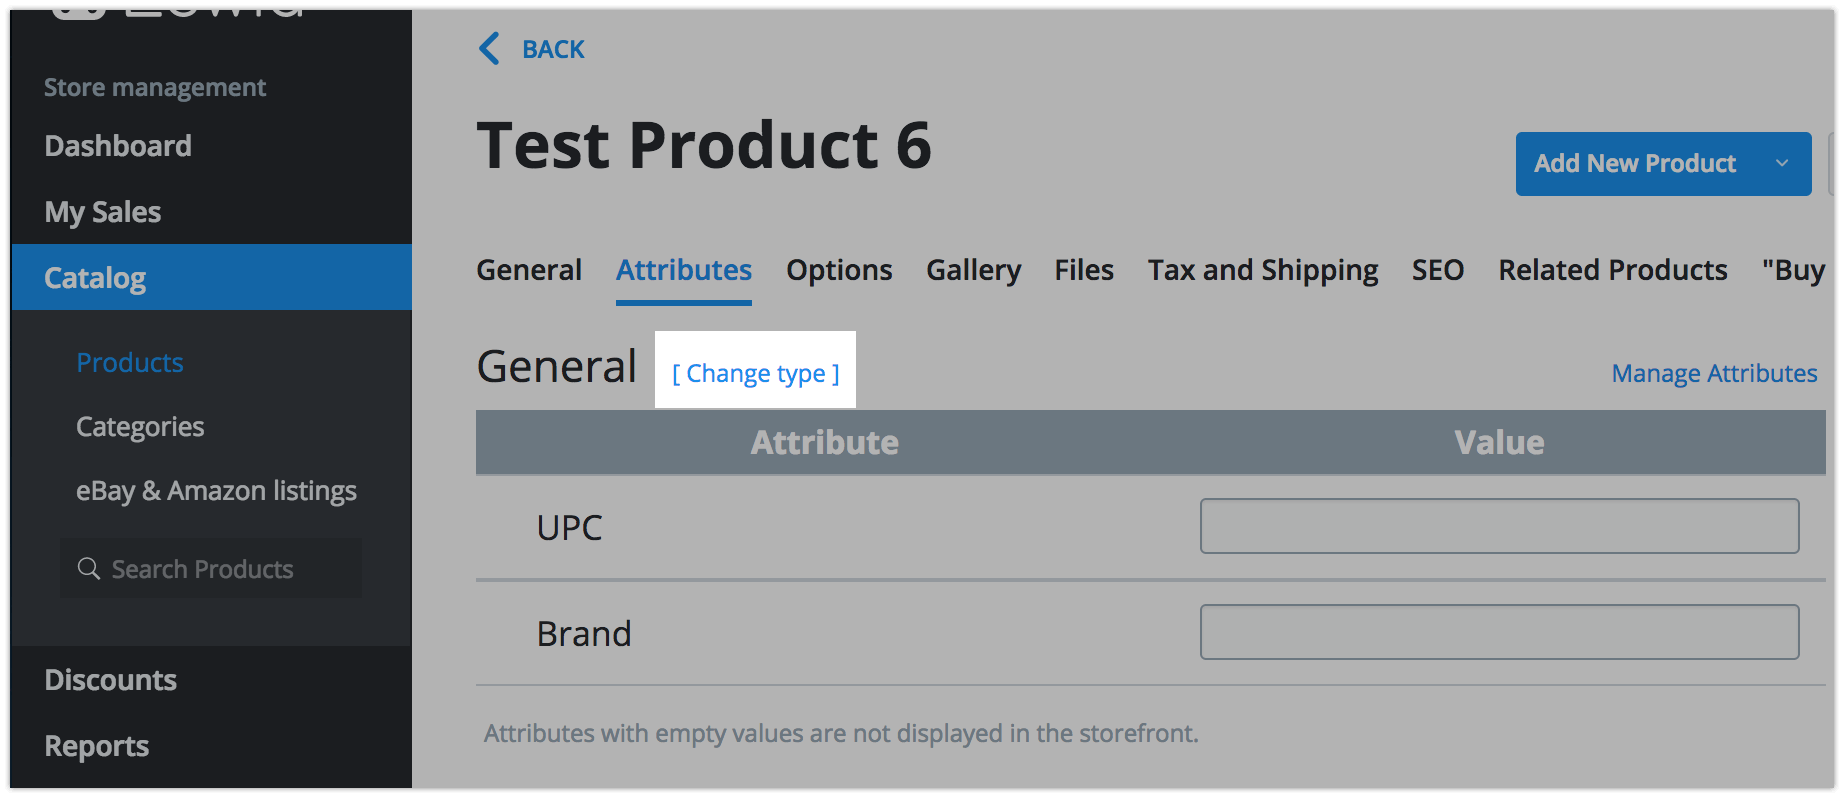 Changing the product type